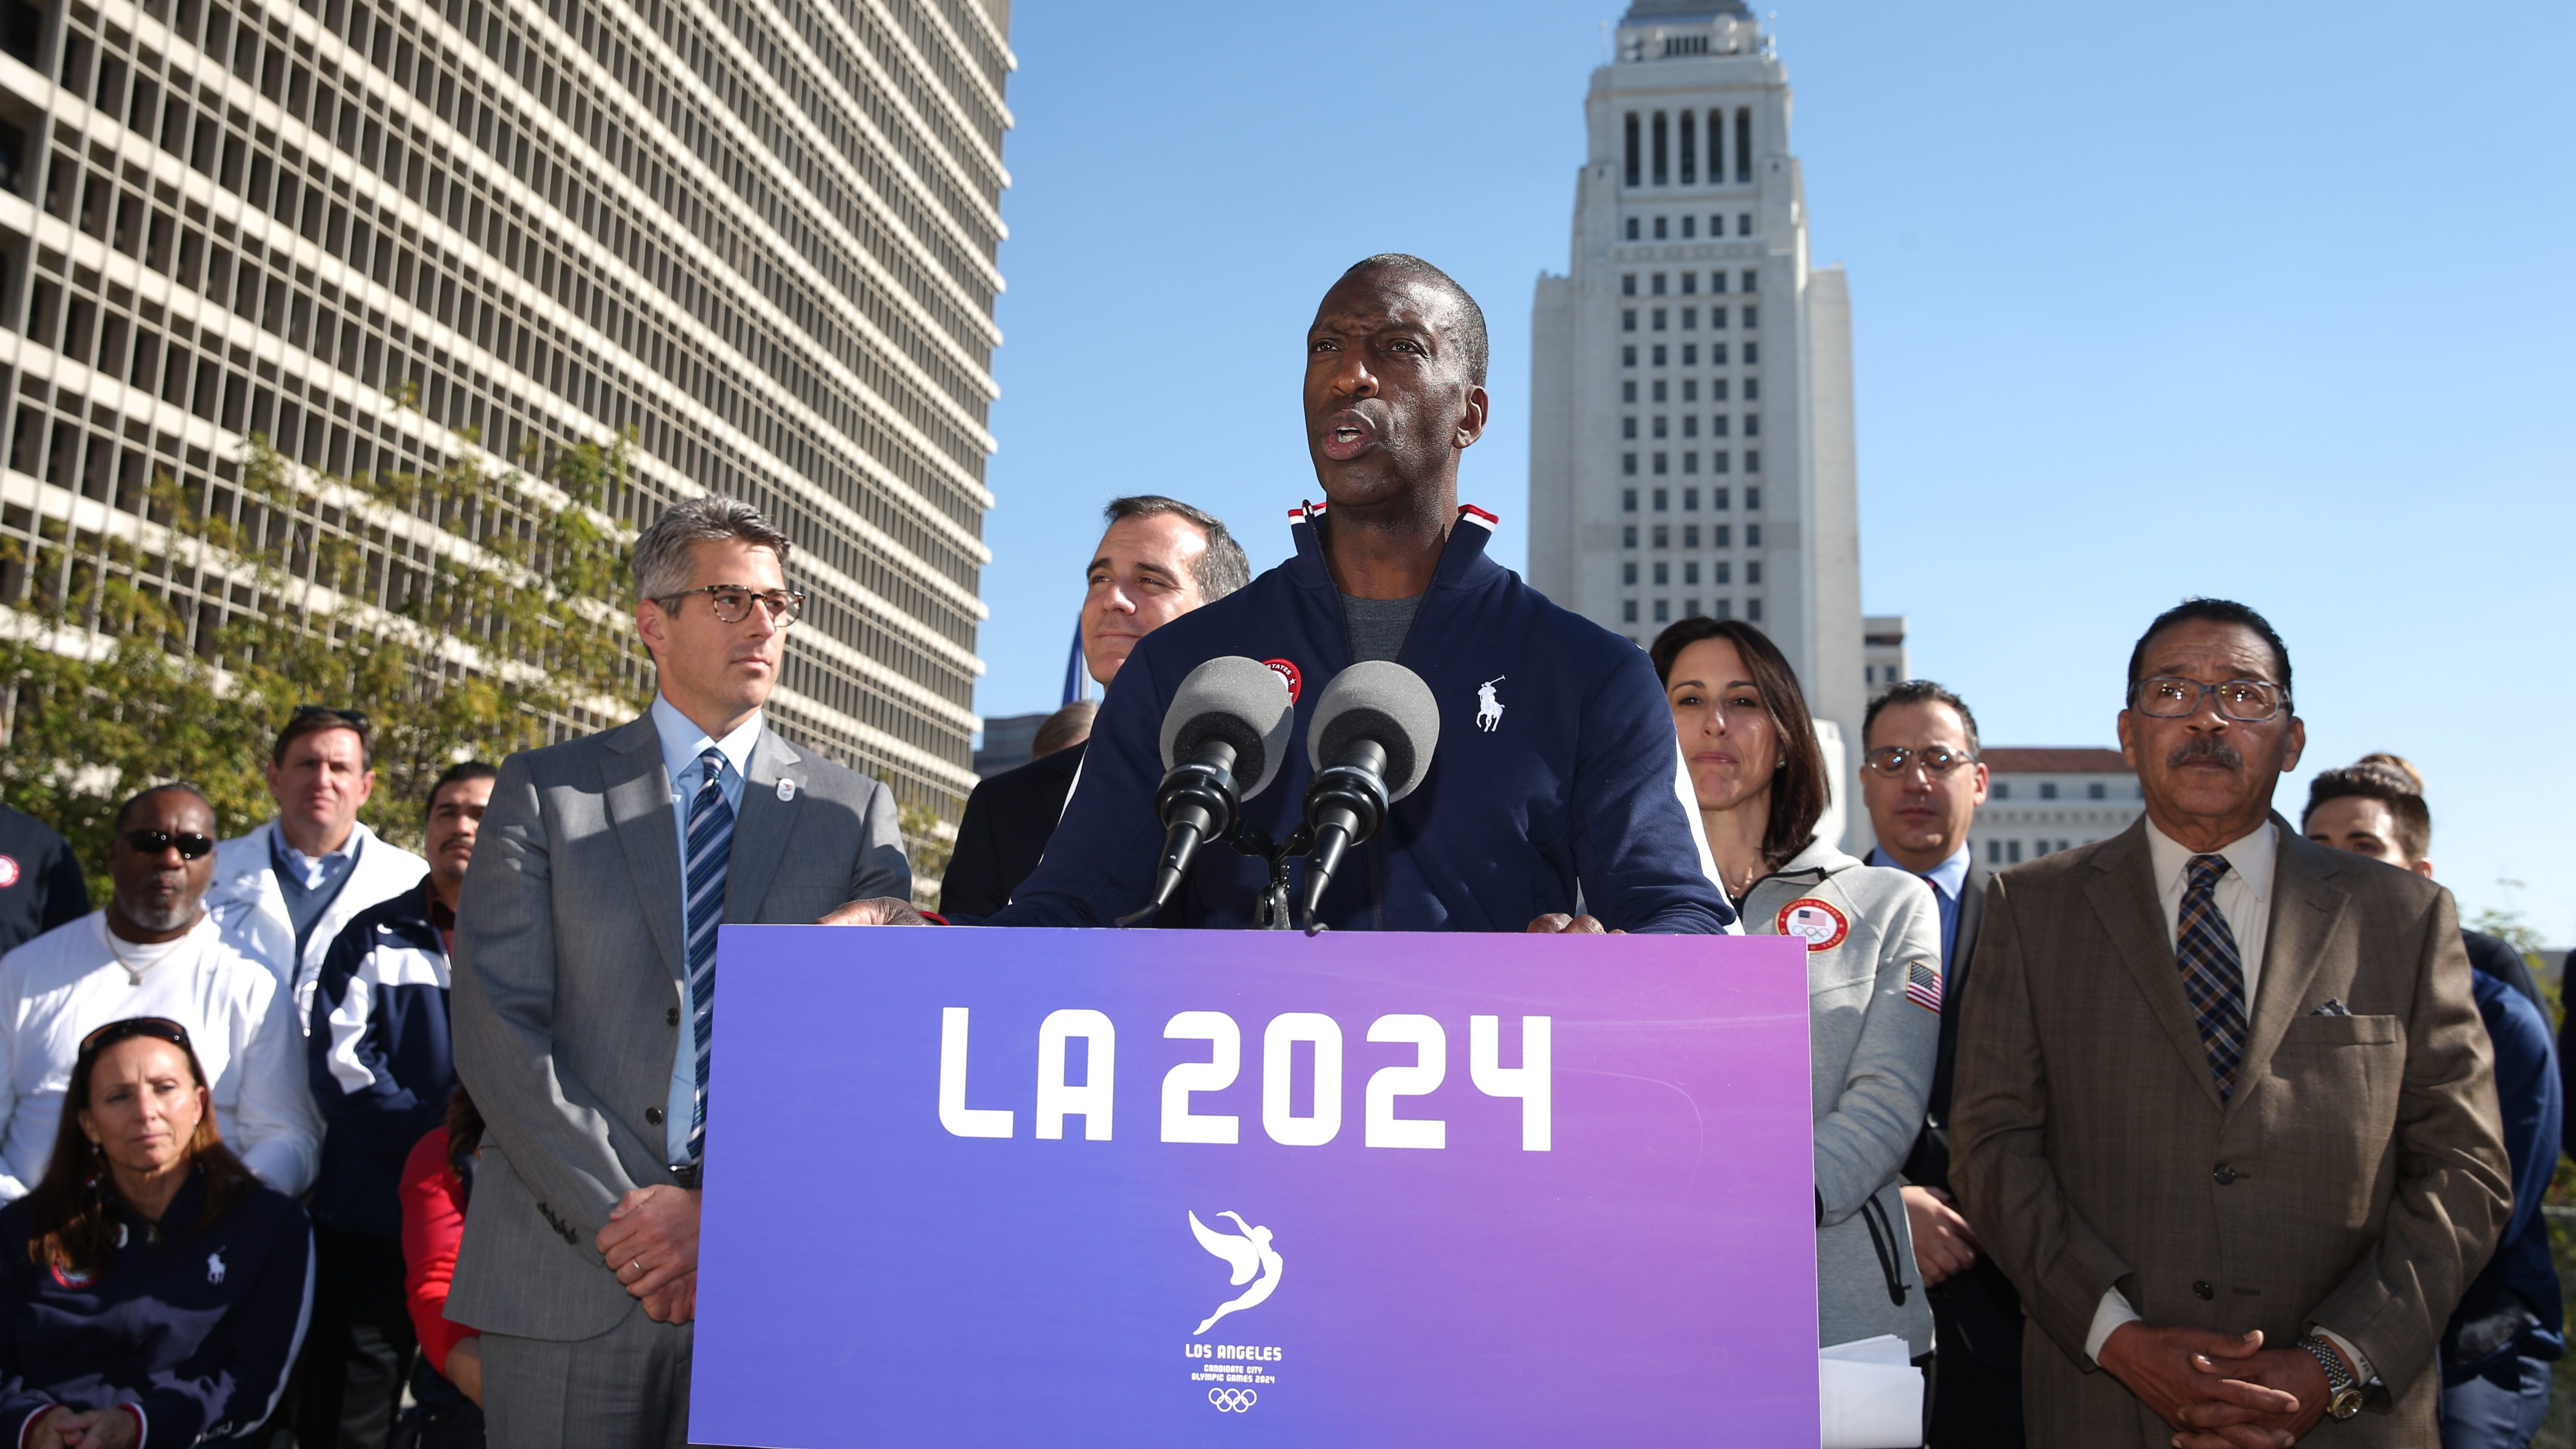 Former Olympic sprinter Michael Johnson speaks at a news conference to annouce the city's final approval to bid for the 2024 Olympic Games, in Los Angeles, California, U.S., January 25, 2017.  REUTERS/Lucy Nicholson - RTSXDHP